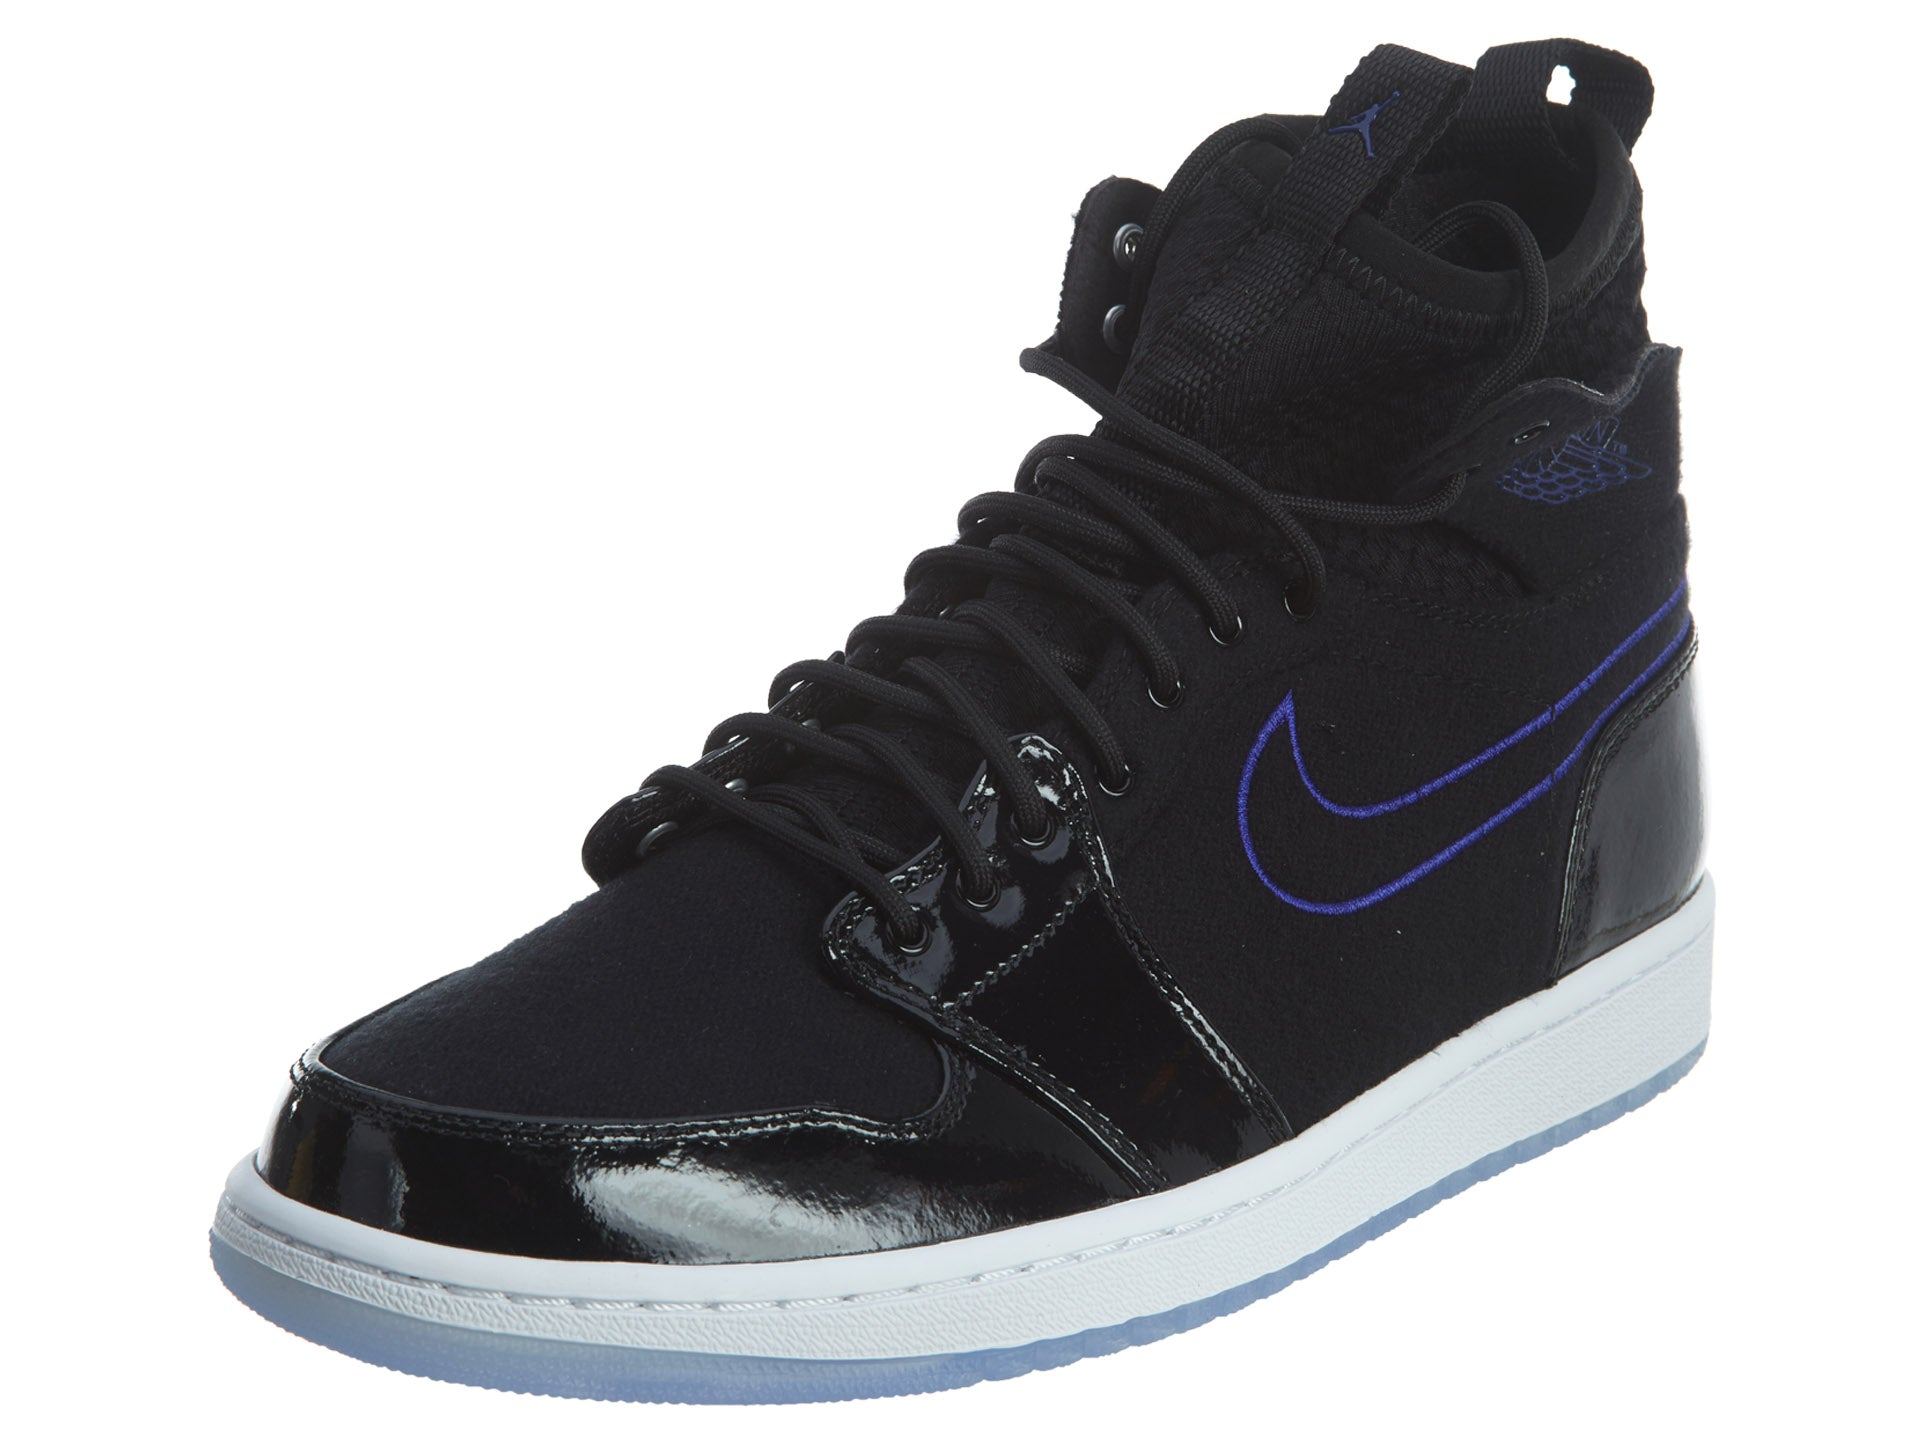 3f15b0ea4720 ... clearance mens air jordan 1 retro ultra high space jam 844700 black  concord f1d6f 69418 ...